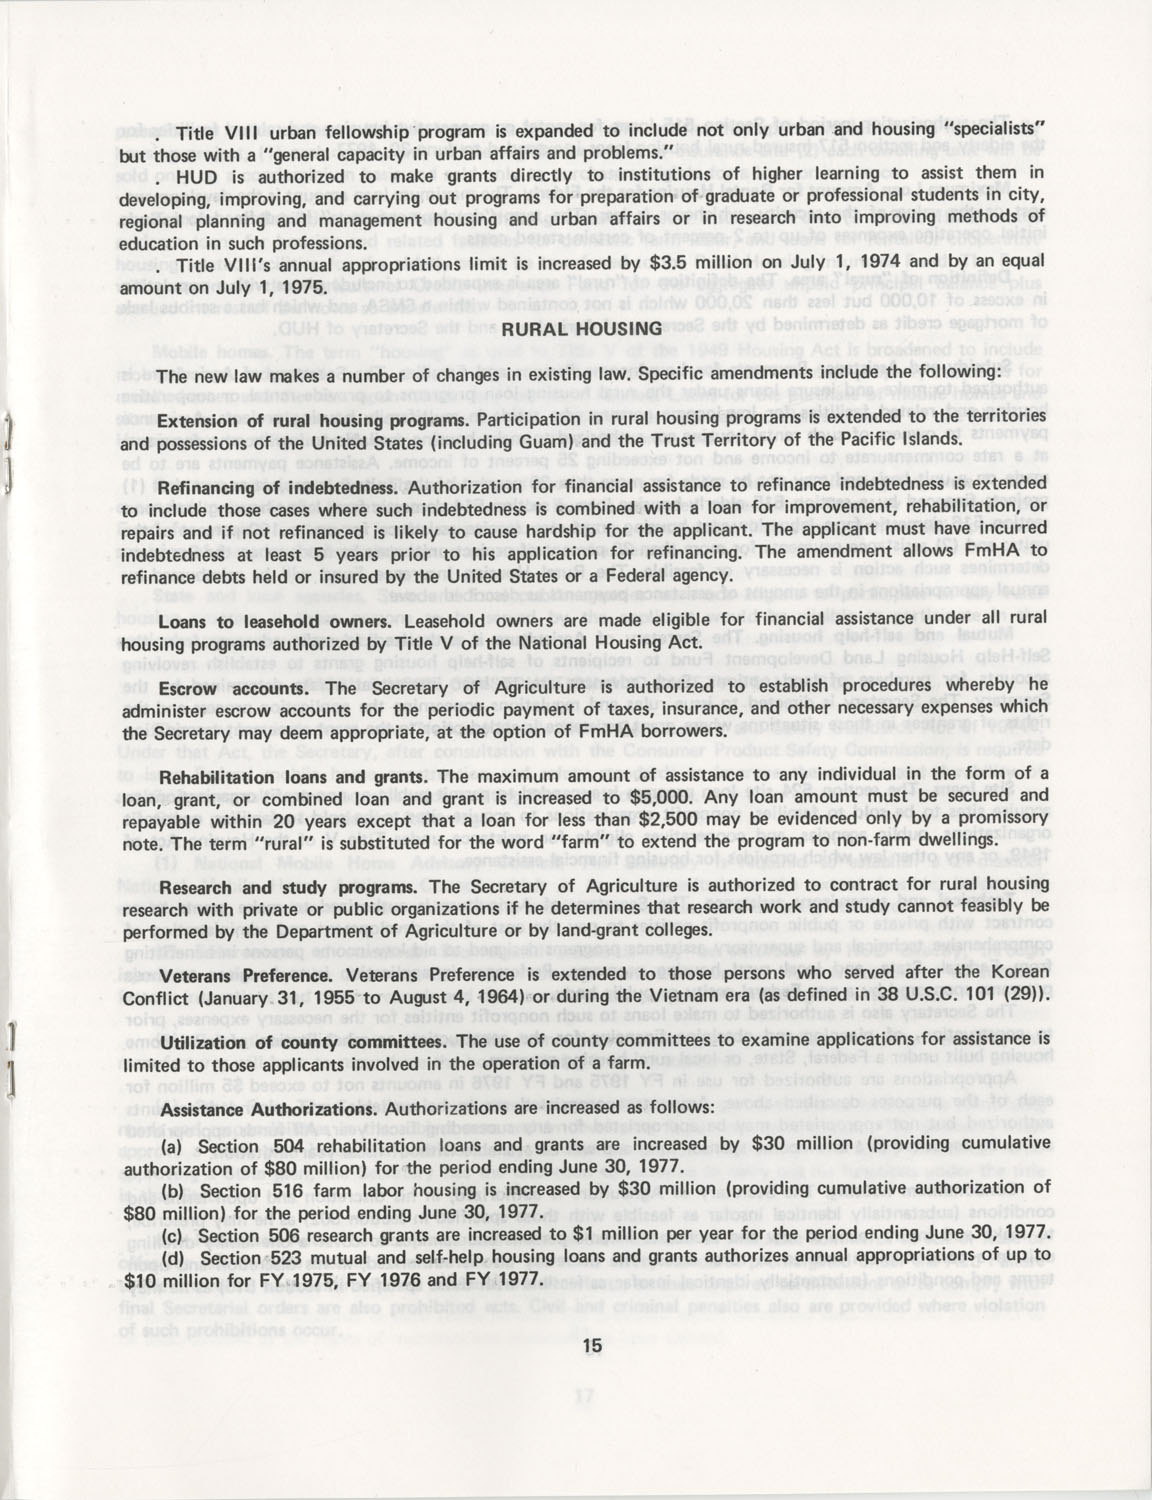 Summary of the Housing and Community Development Act of 1974, Page 15